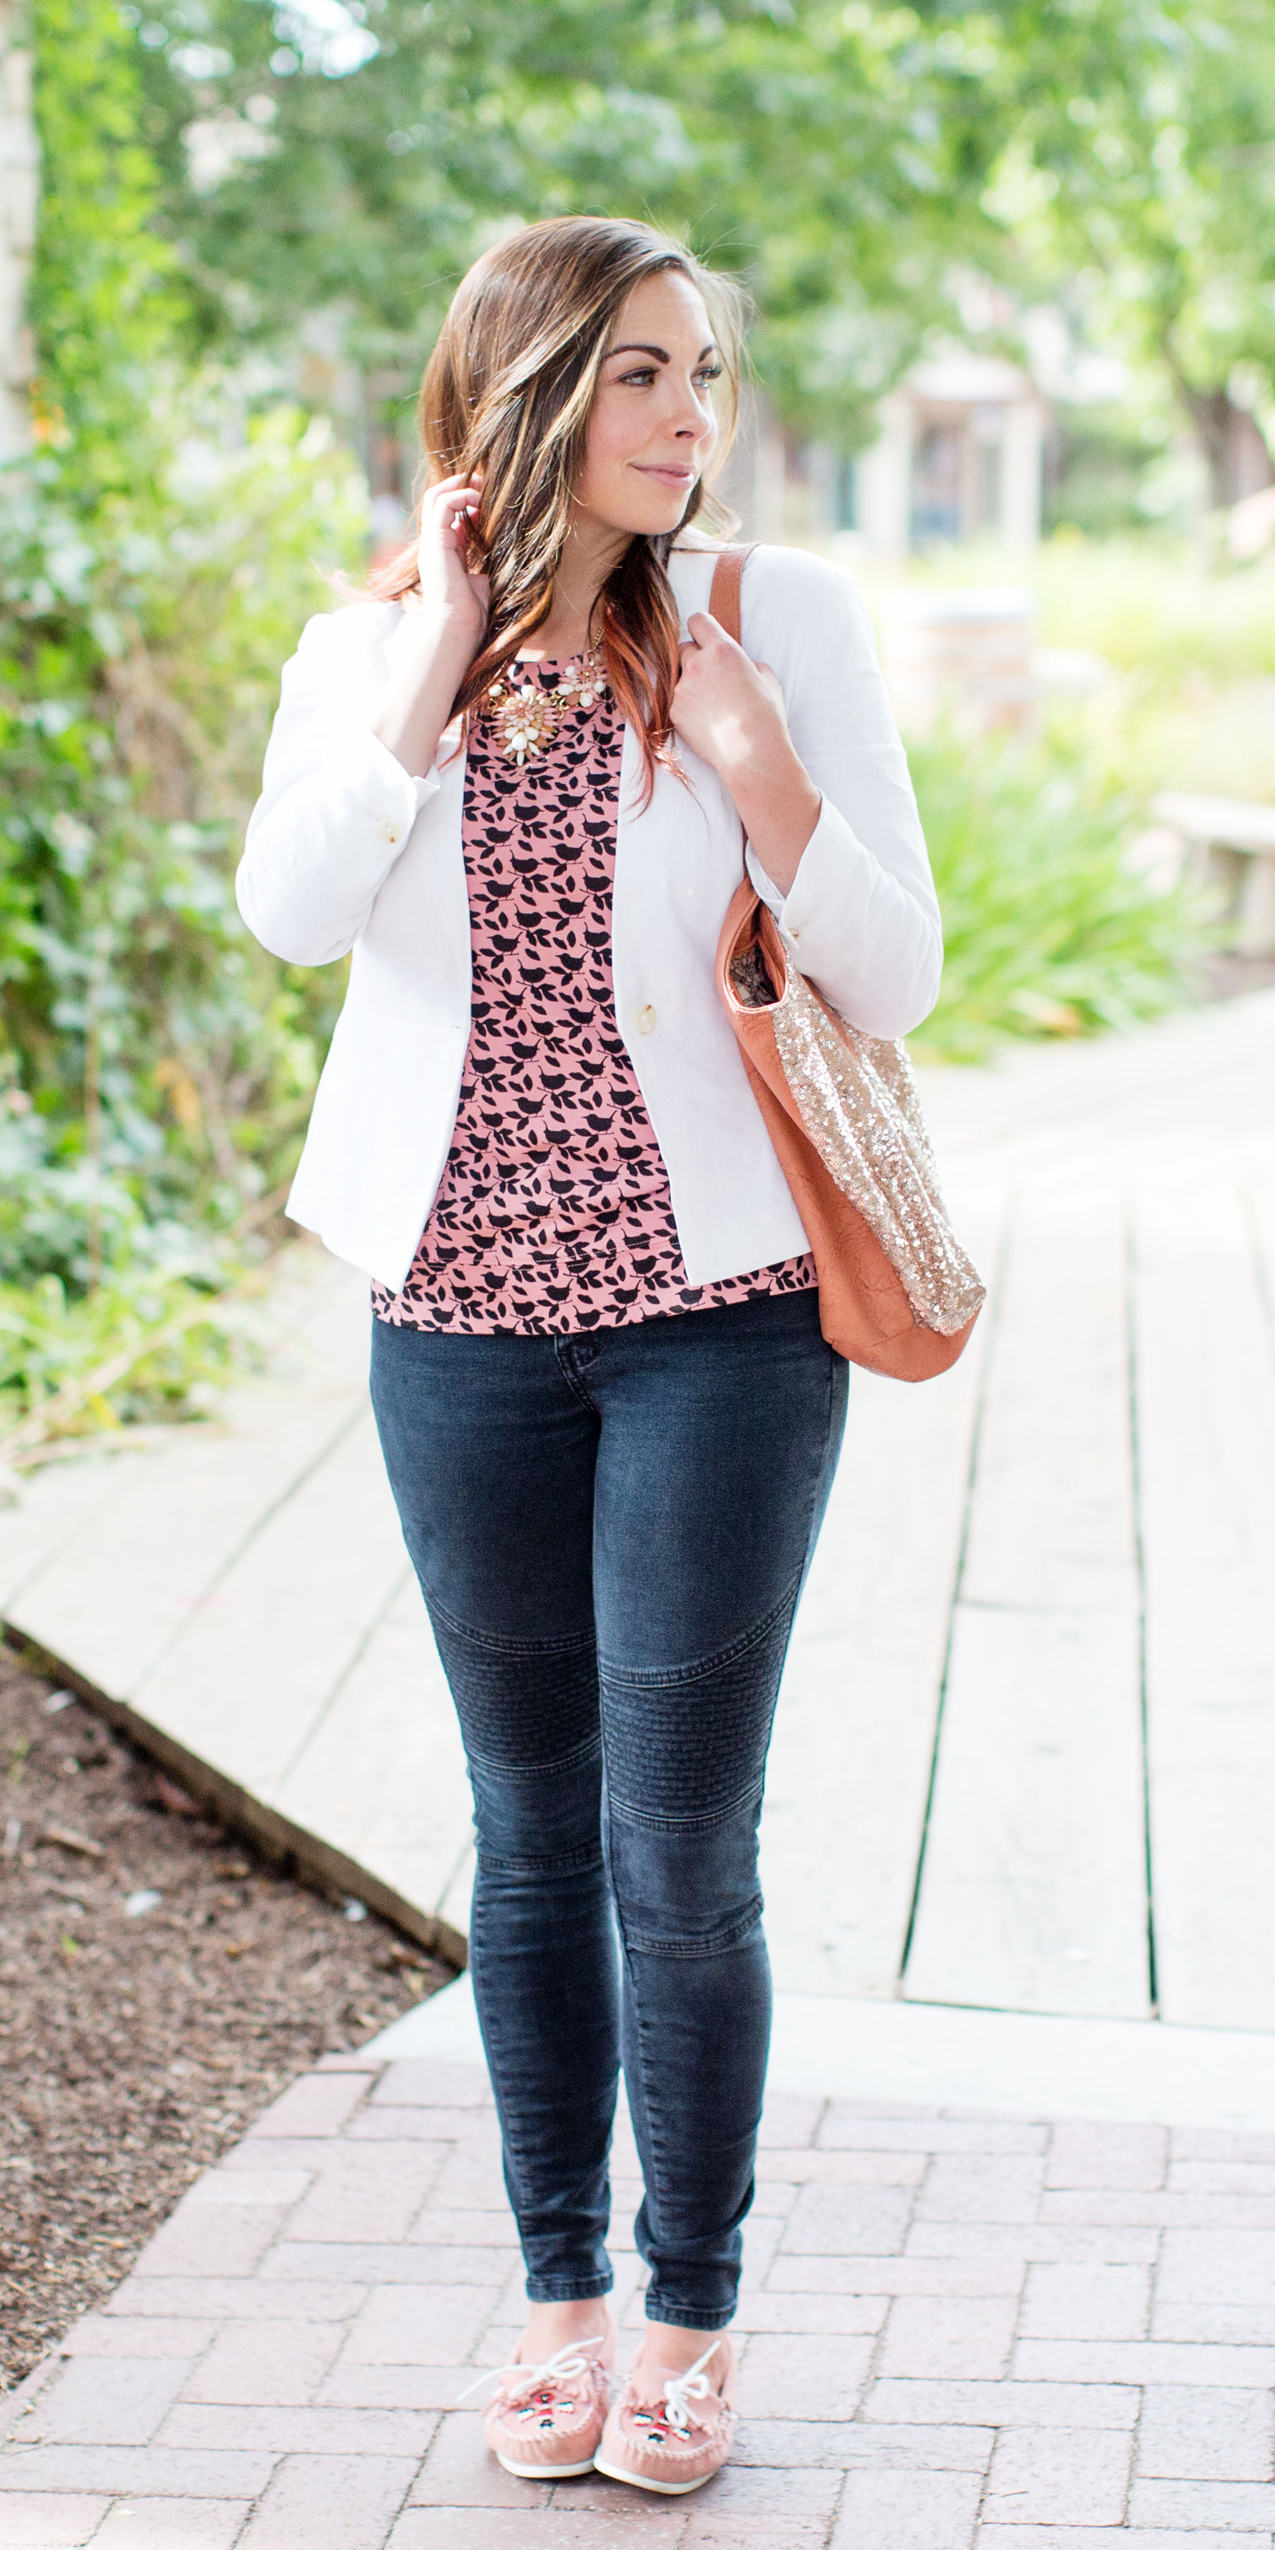 How to Wear White Jeans in Summer + Outfit Ideas to Copy